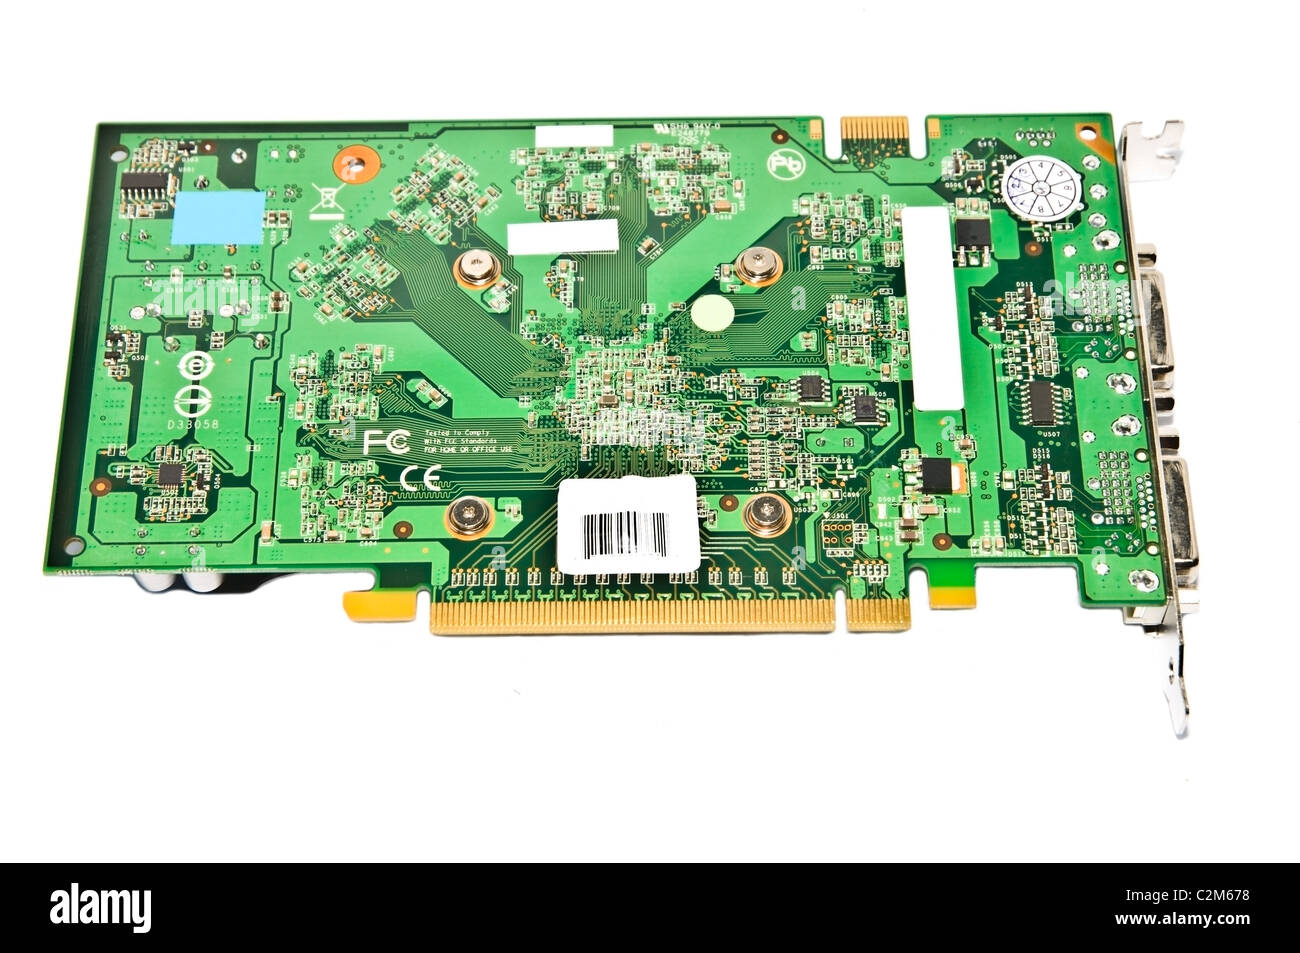 Graphics card circuit board on white background. - Stock Image